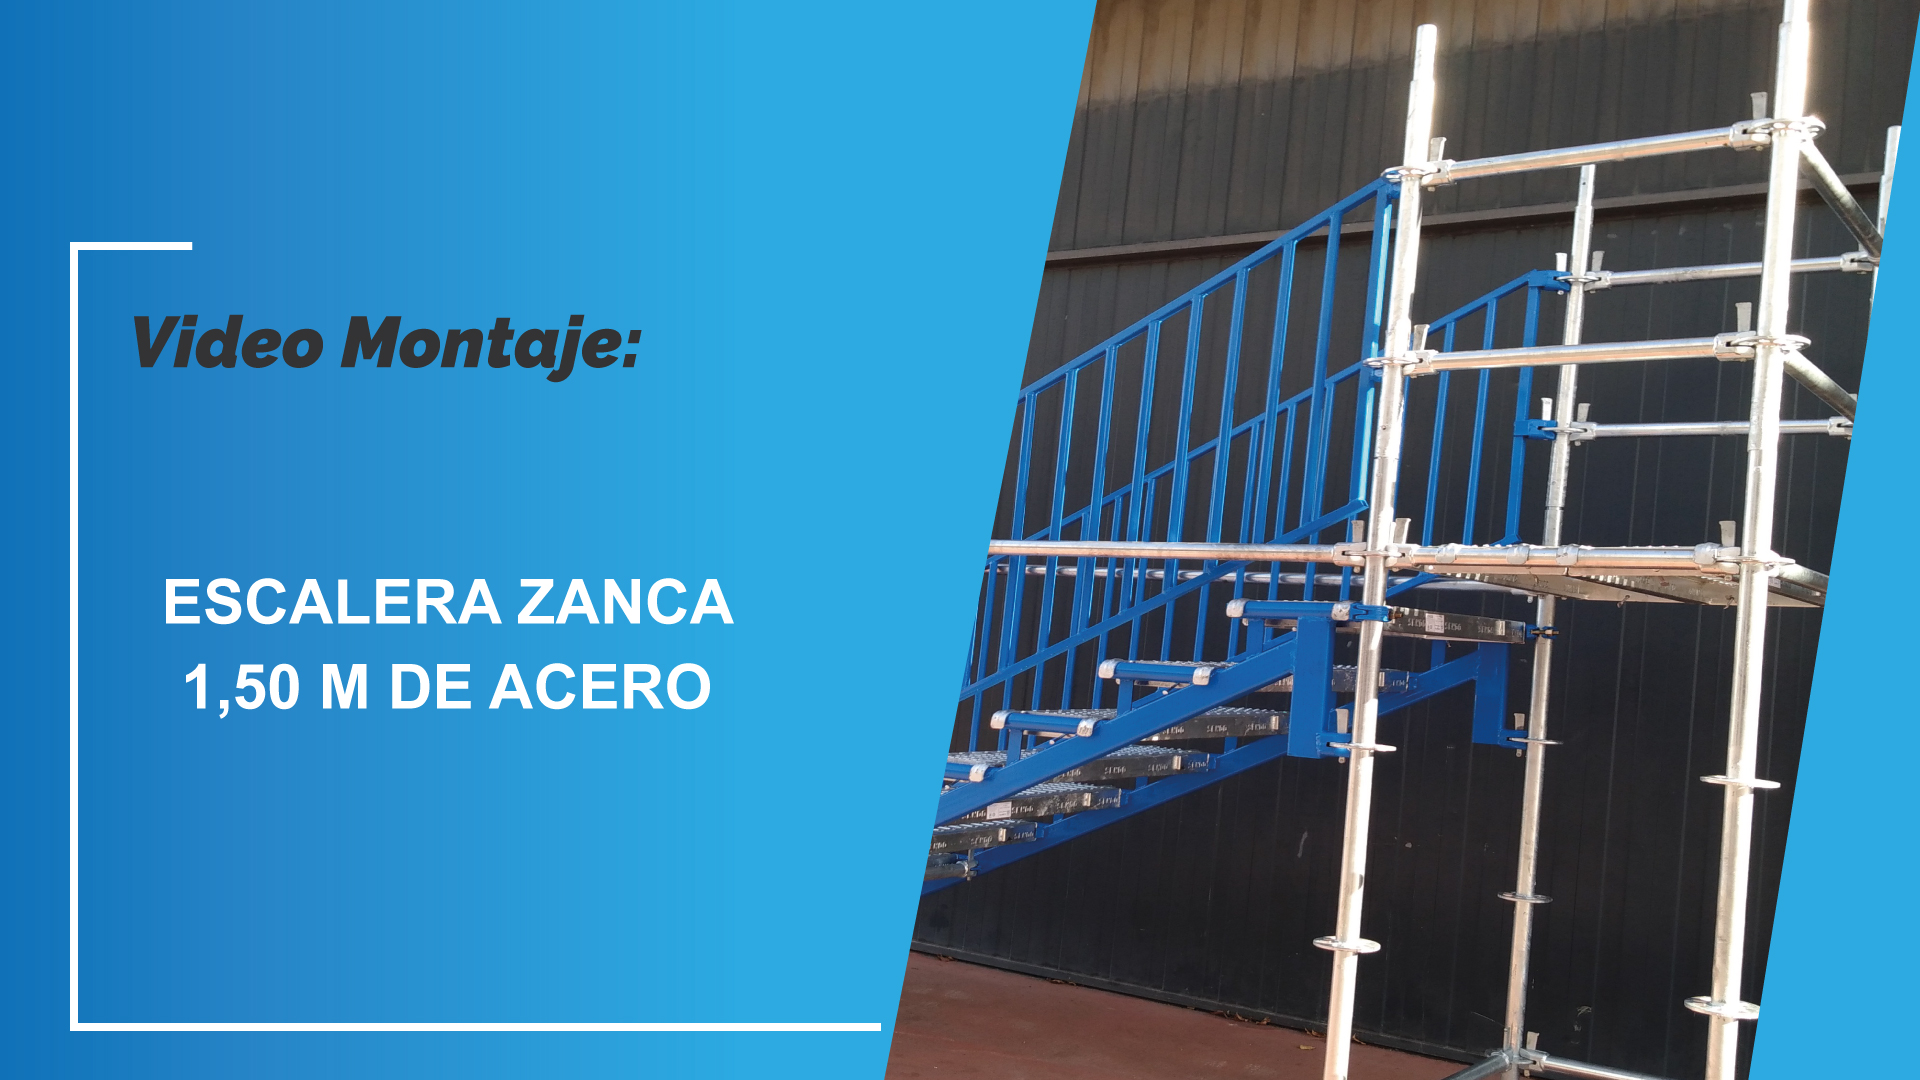 Video Montaje: Escalera Zanca